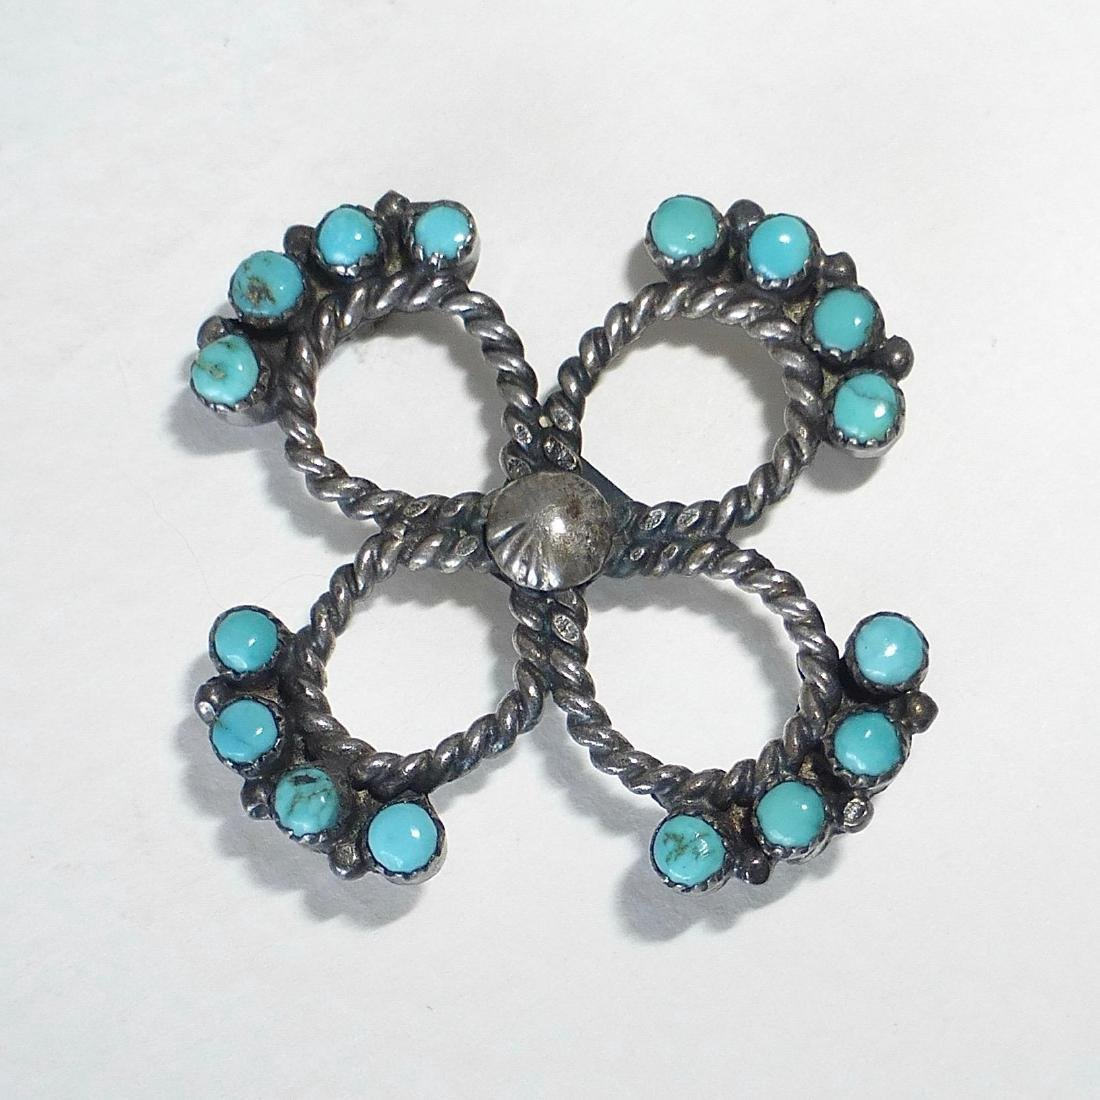 Native American Sterling Silver Turquoise Pin - 3